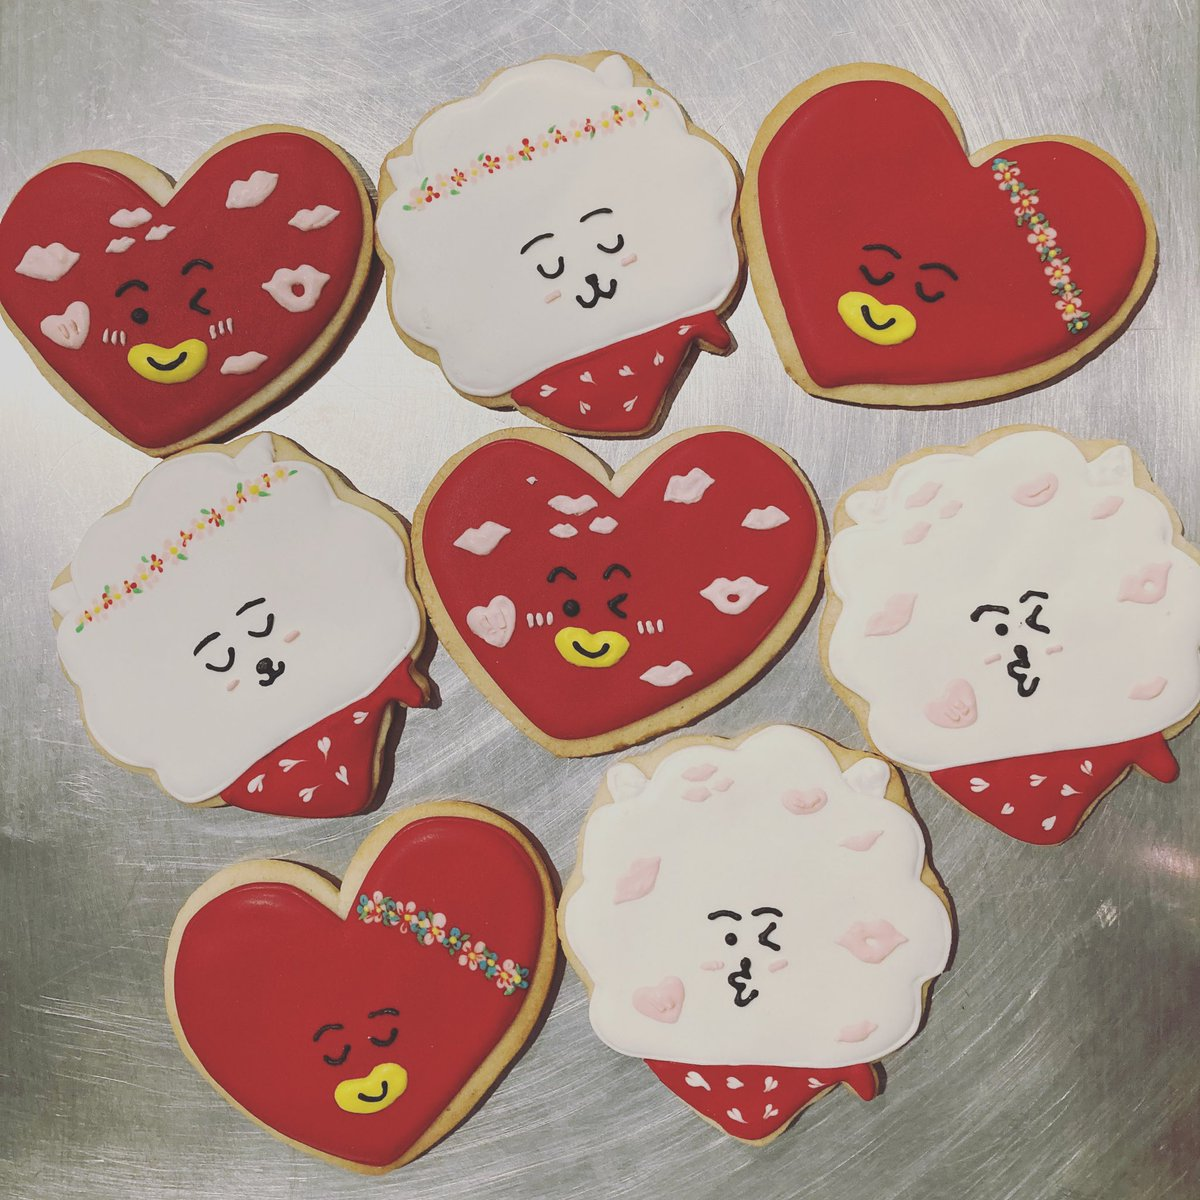 Sold out of TATA, but I do have a few RJs left if anyone is interested! DM me! I can ship them as well! #bt21 #bts #tata #rj #army #socalarmys #cookies #kookies #flowerRJ #FlowerV #sugarcookies #cupsleeves #btscupsleeves #BTSJIN #BTSV #jin #v #tae #kth #ksj @btscalinoonas1